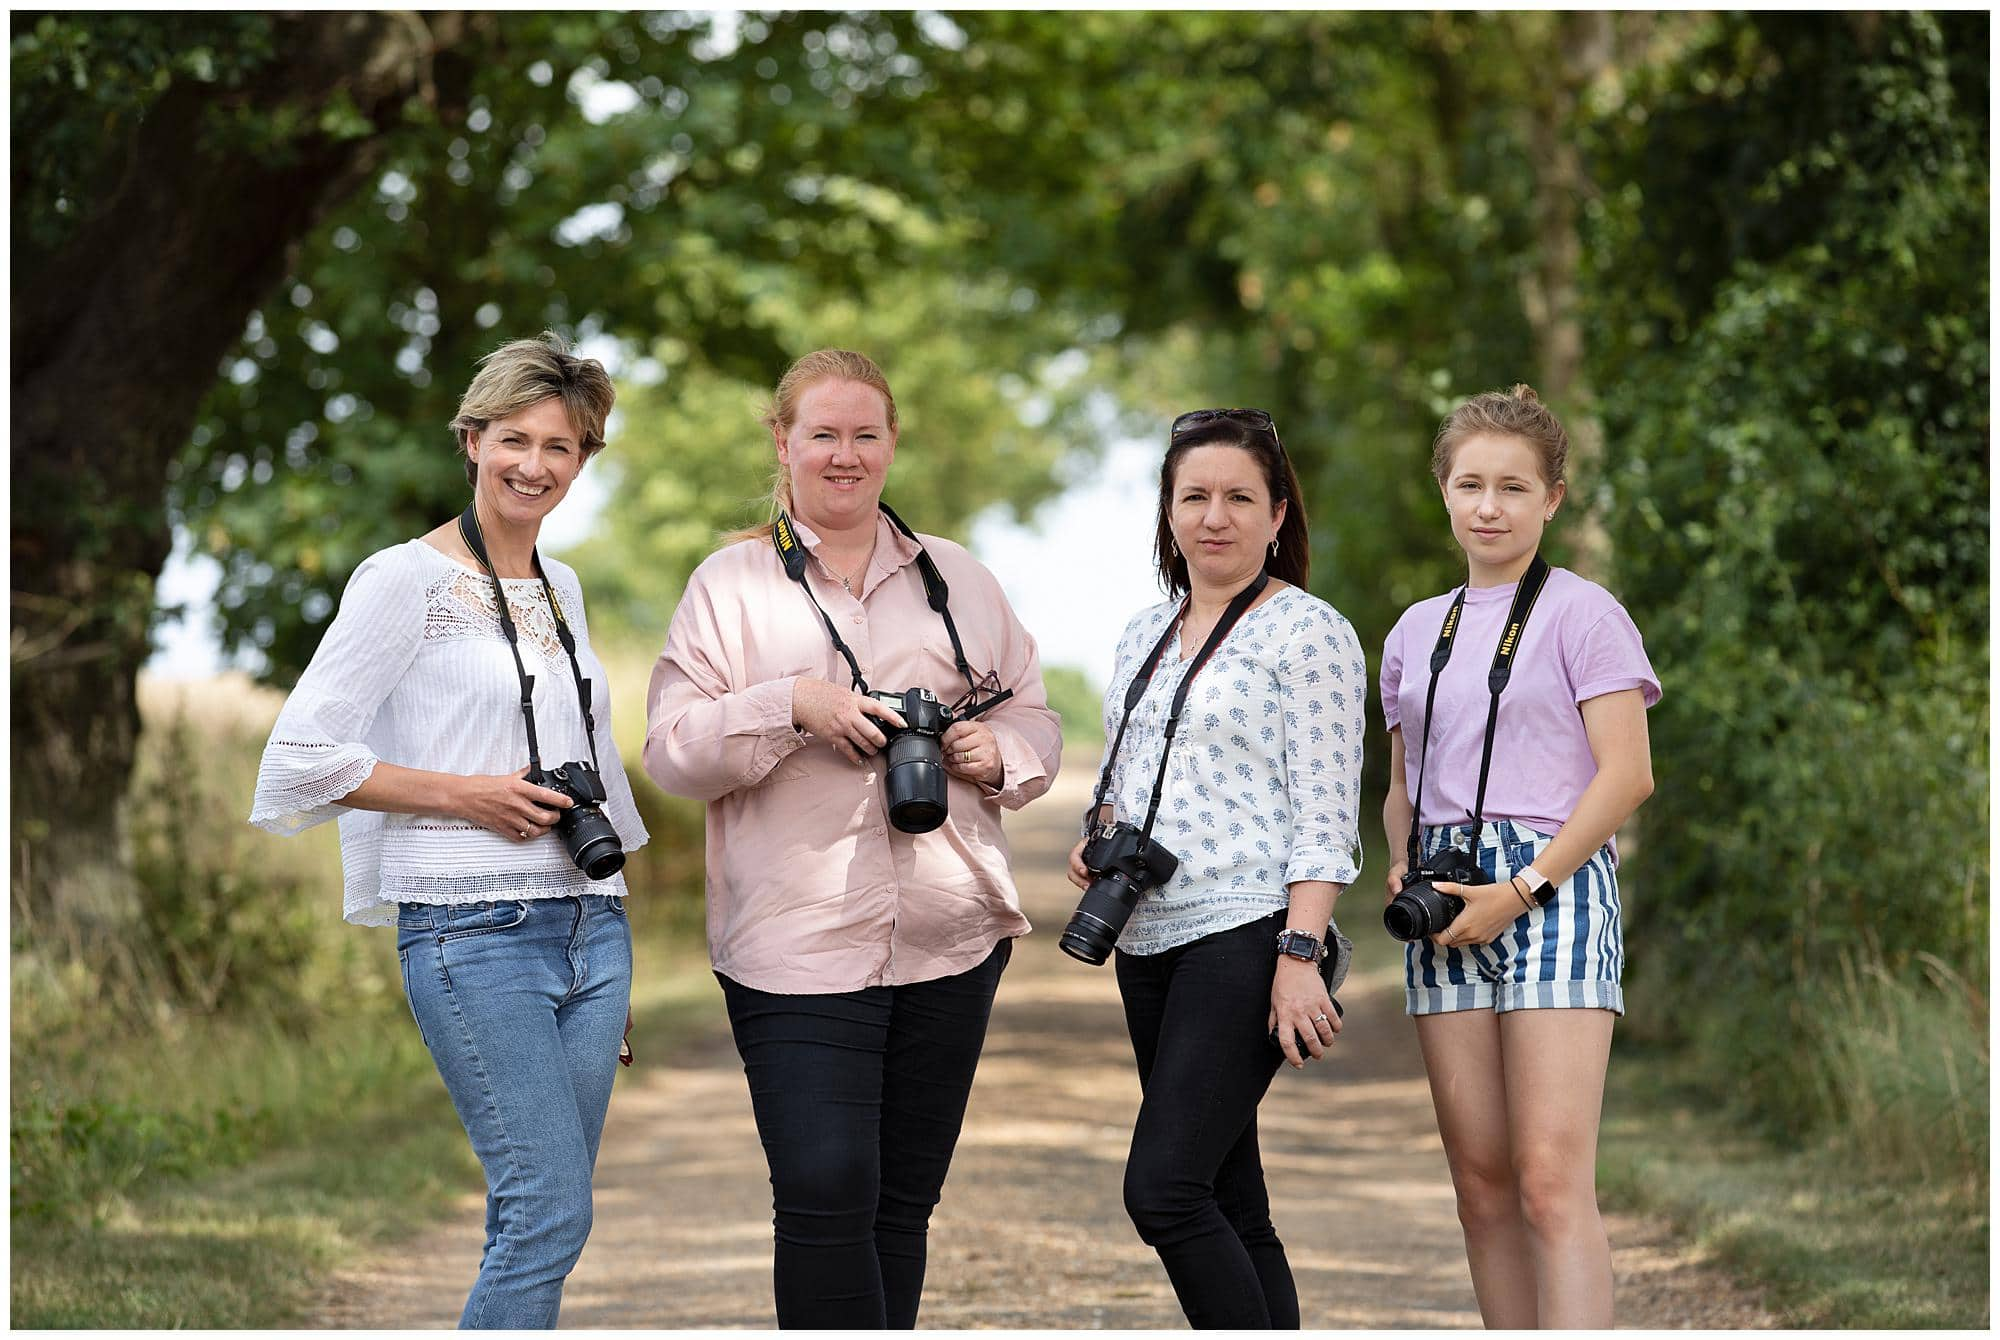 Four Female Photographers holding their camera's during a Beginners Photography Workshop in Stoke By Clare, Suffolk